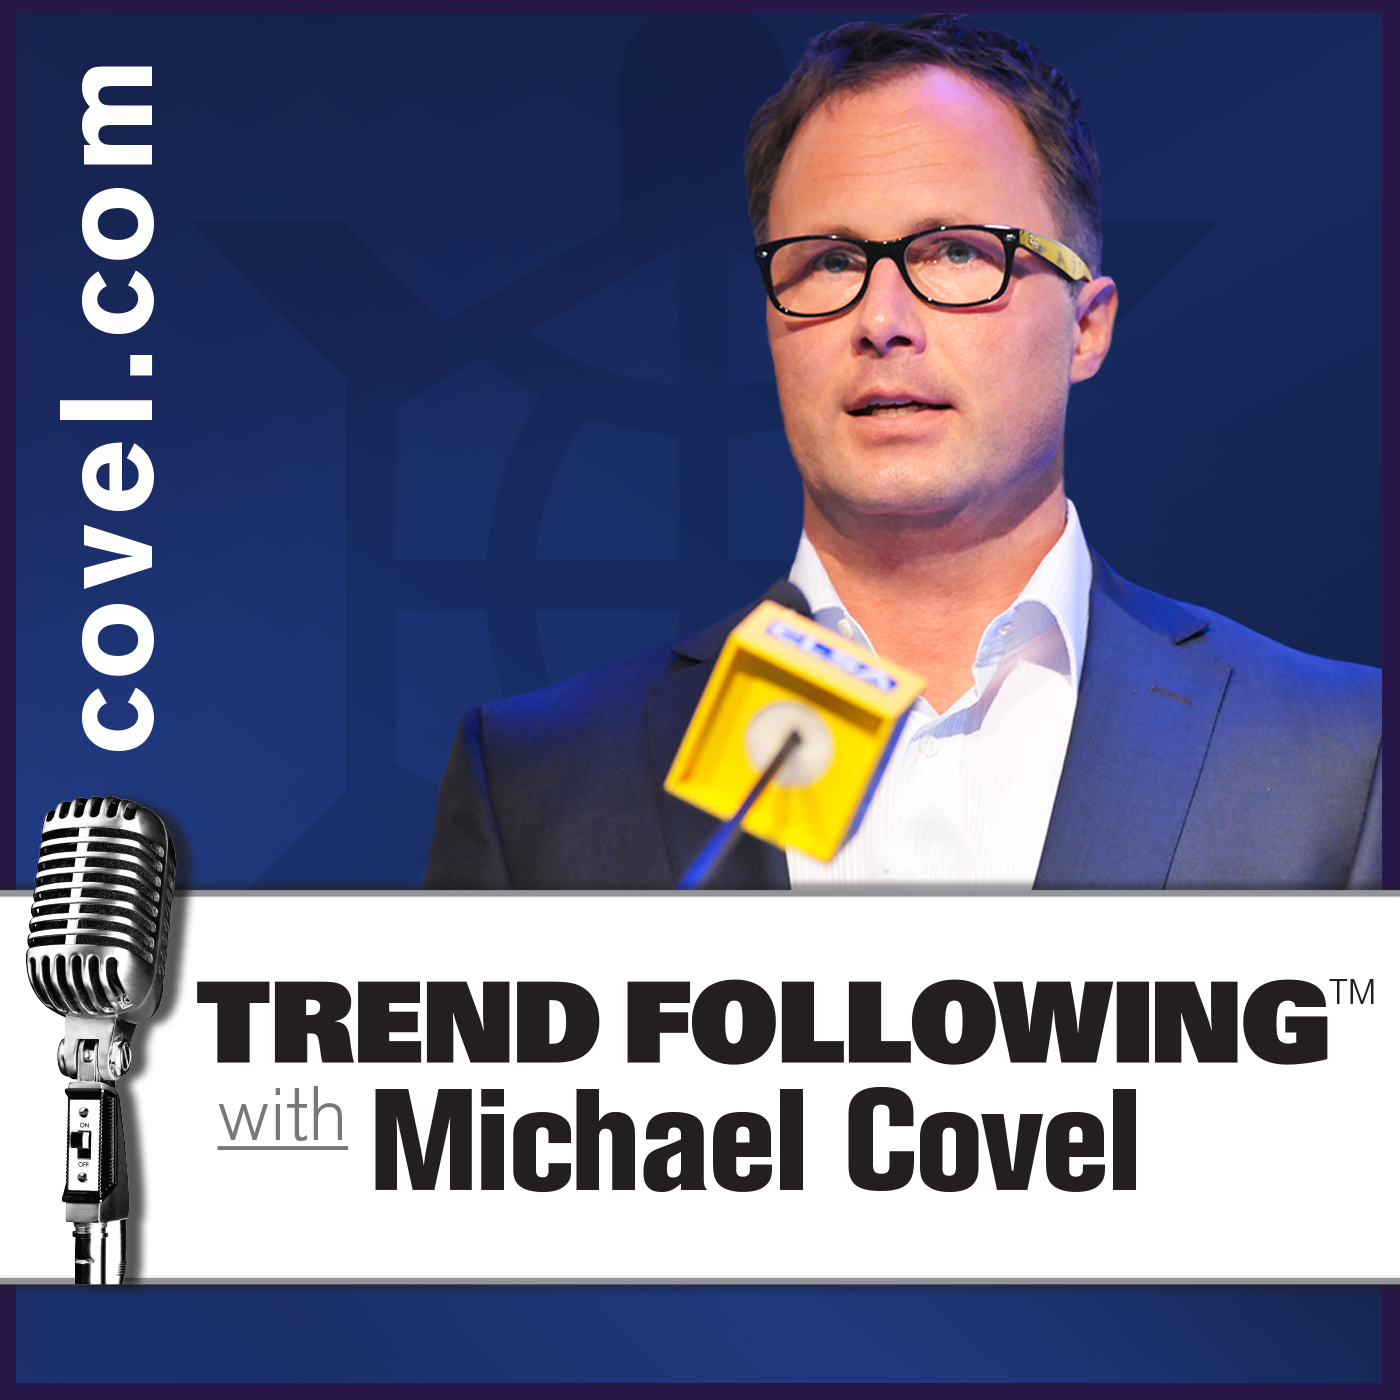 Ep. 475: Chase Jarvis Interview with Michael Covel on Trend Following Radio